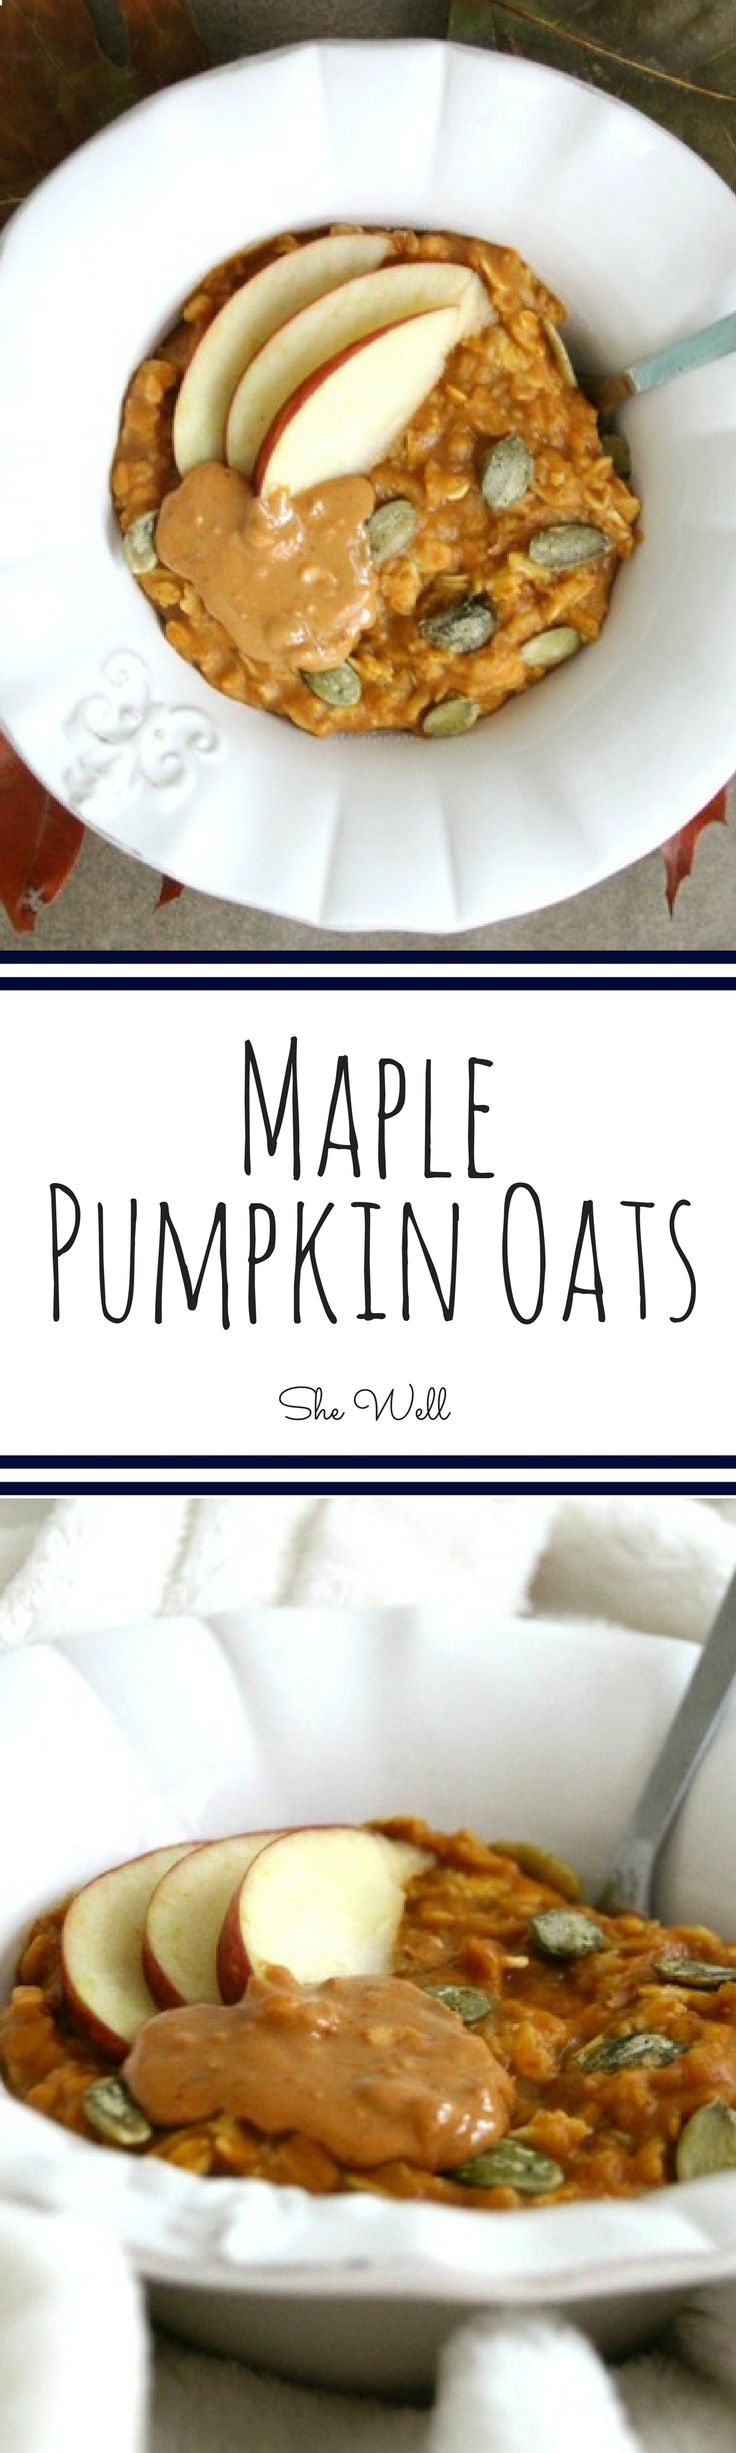 These Maple Pumpkin Oats are the perfect easy breakfast! Great for people who are vegan, vegetarian and dairy-free! Repin to click now or save for later!